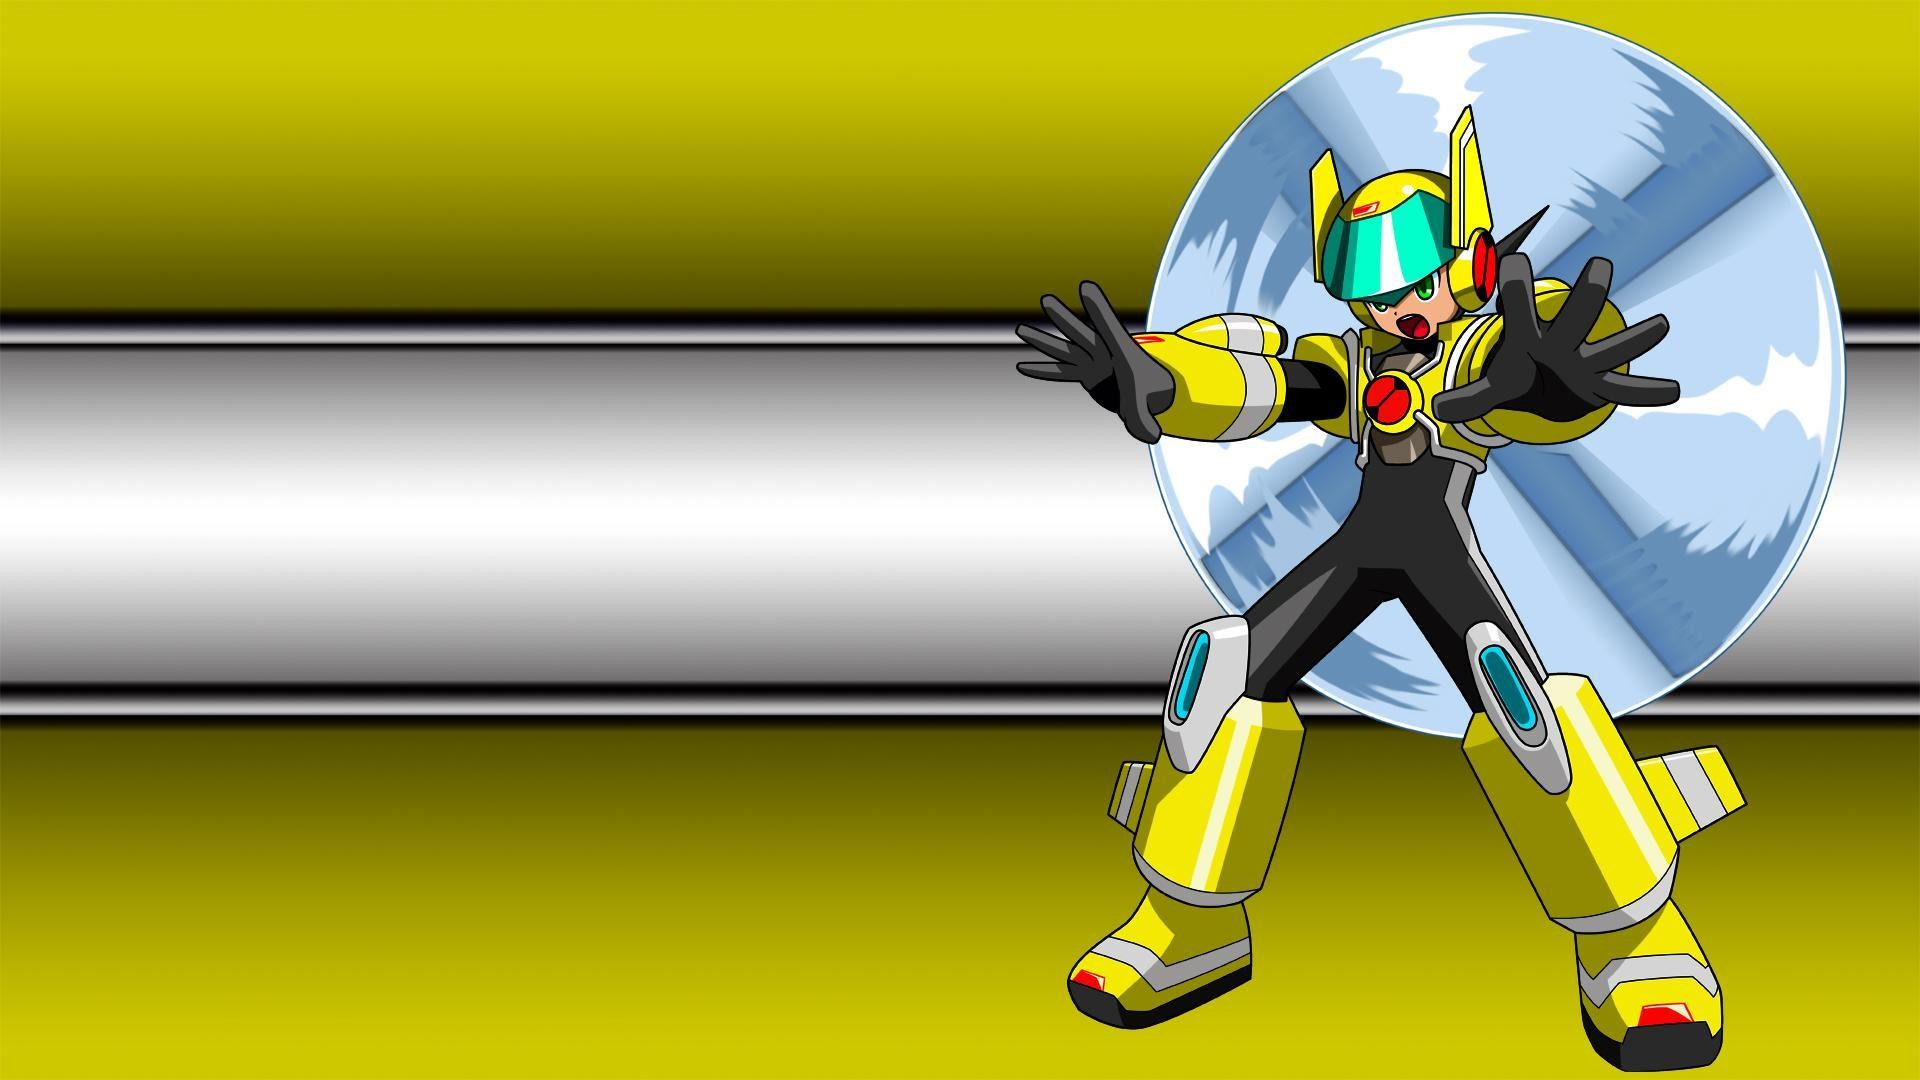 Related Wallpapers. Battle Network – Mega Man In Air Suit